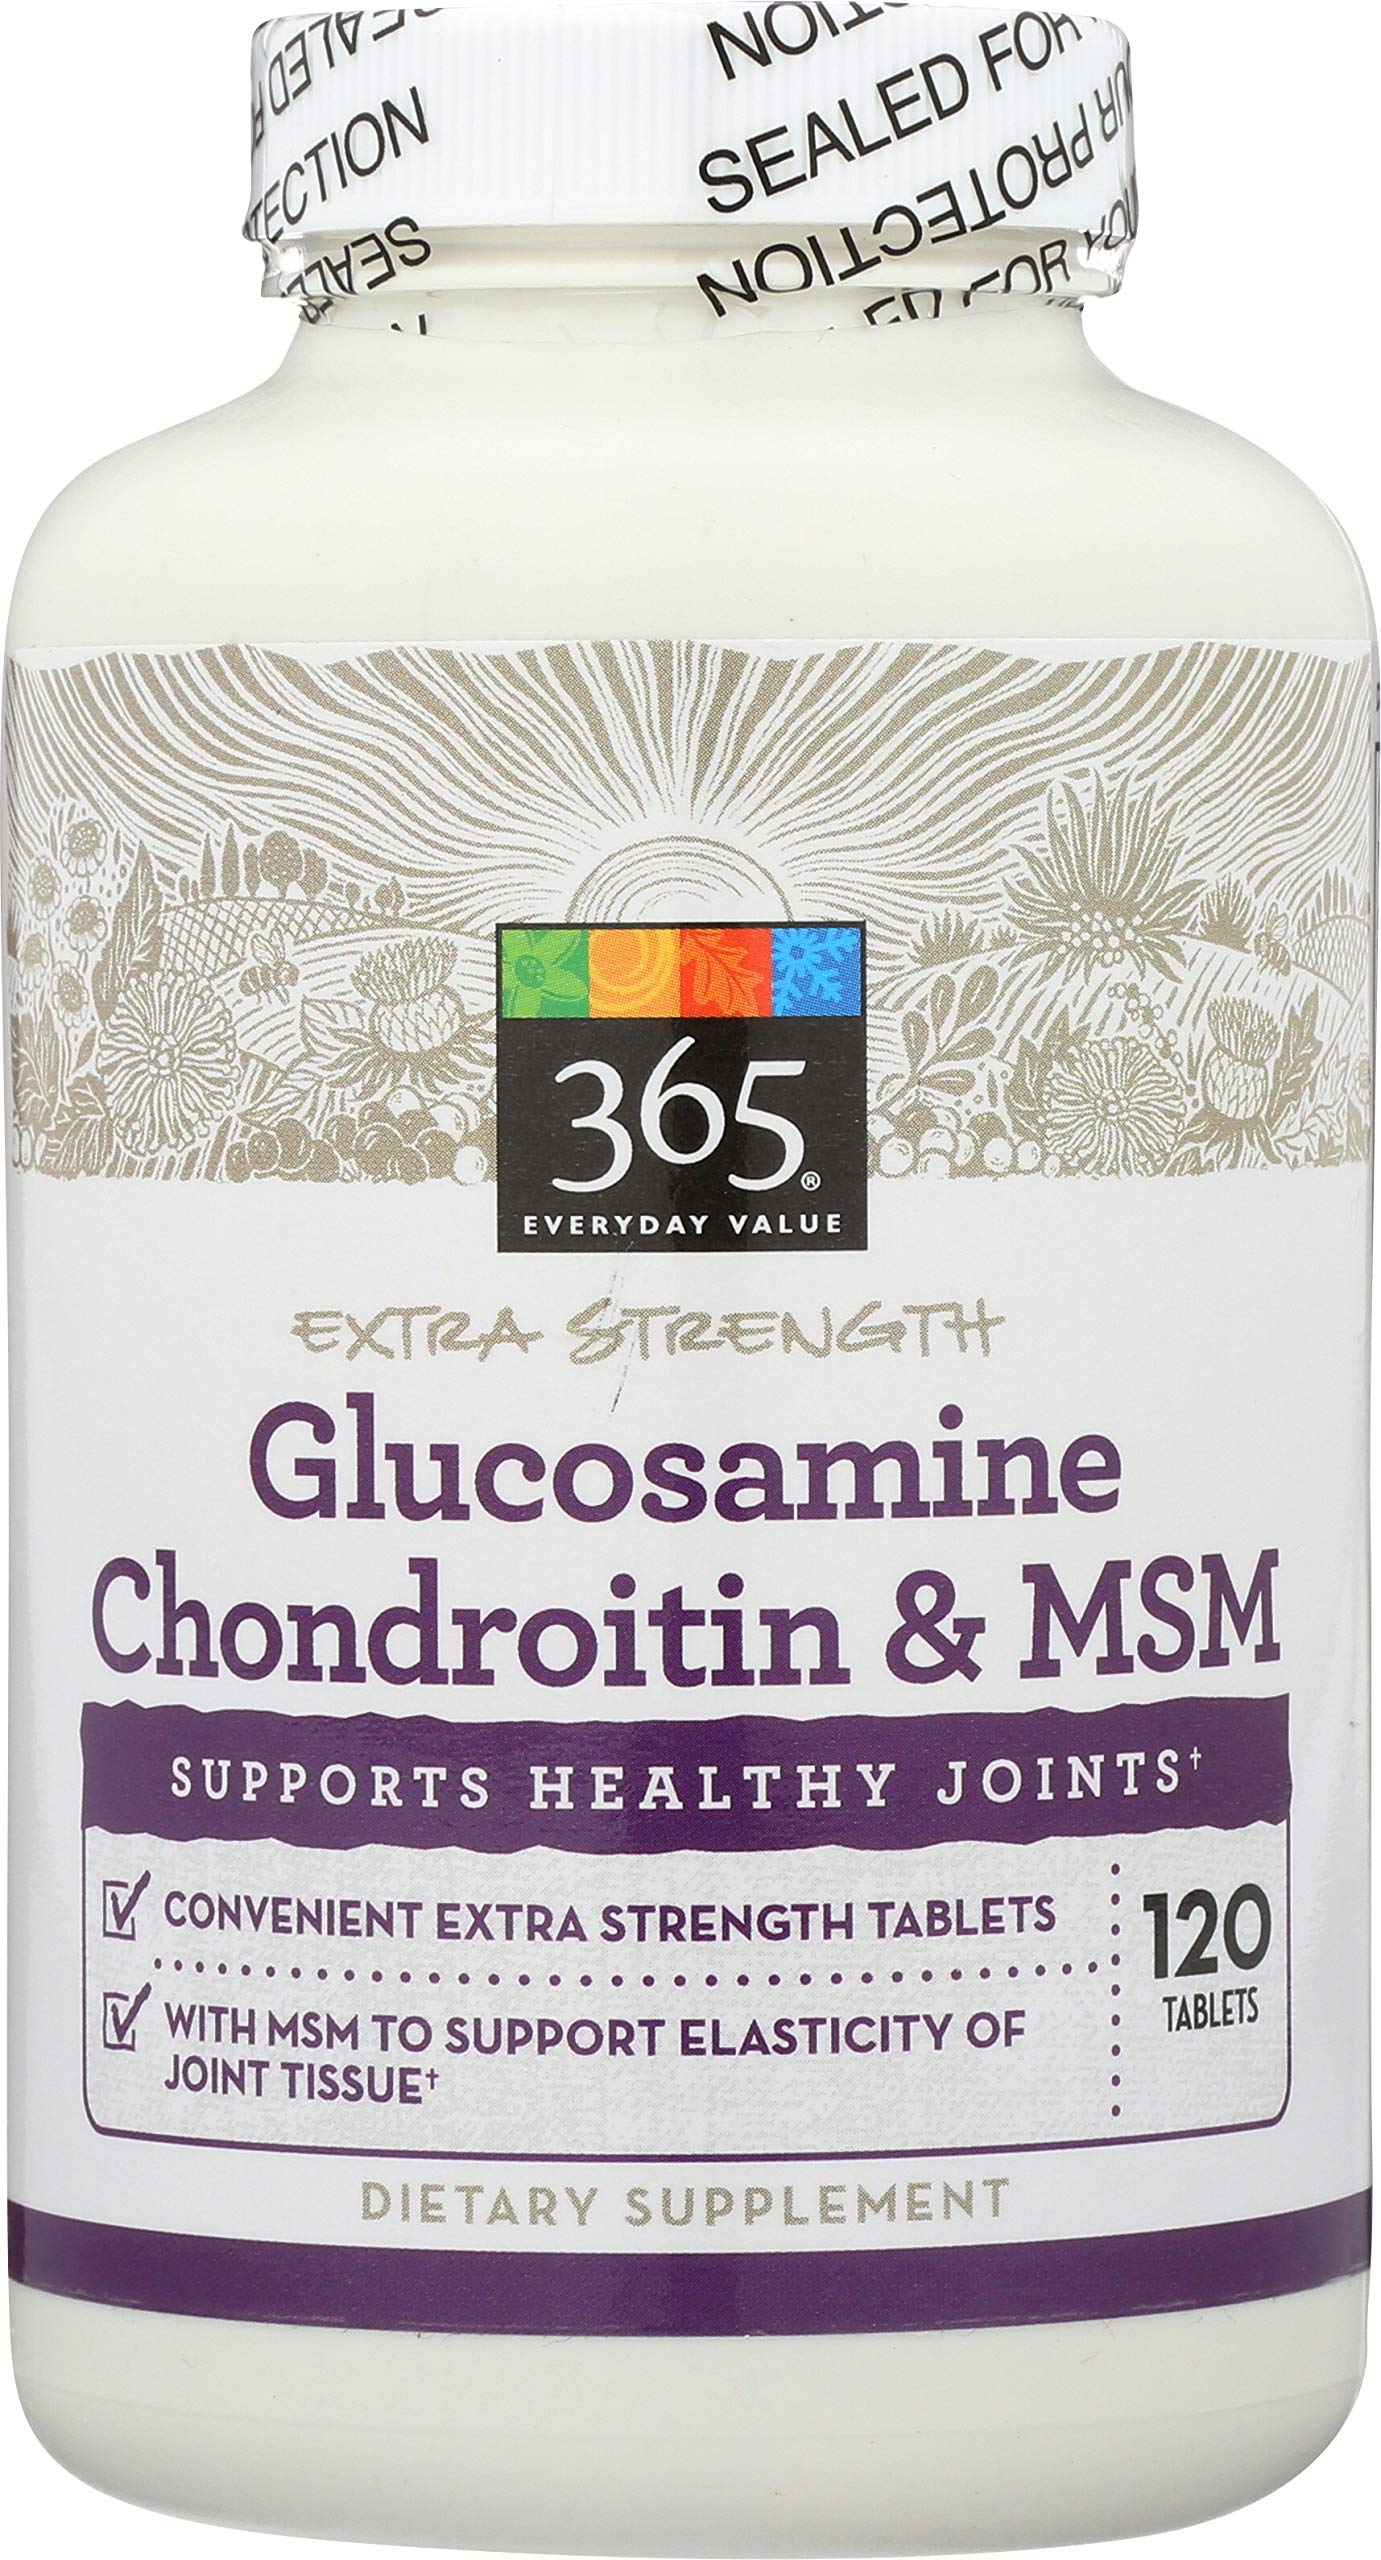 365 Everyday Value, Glucosamine Chondroitin & MSM, 120 ct by 365 Everyday Value